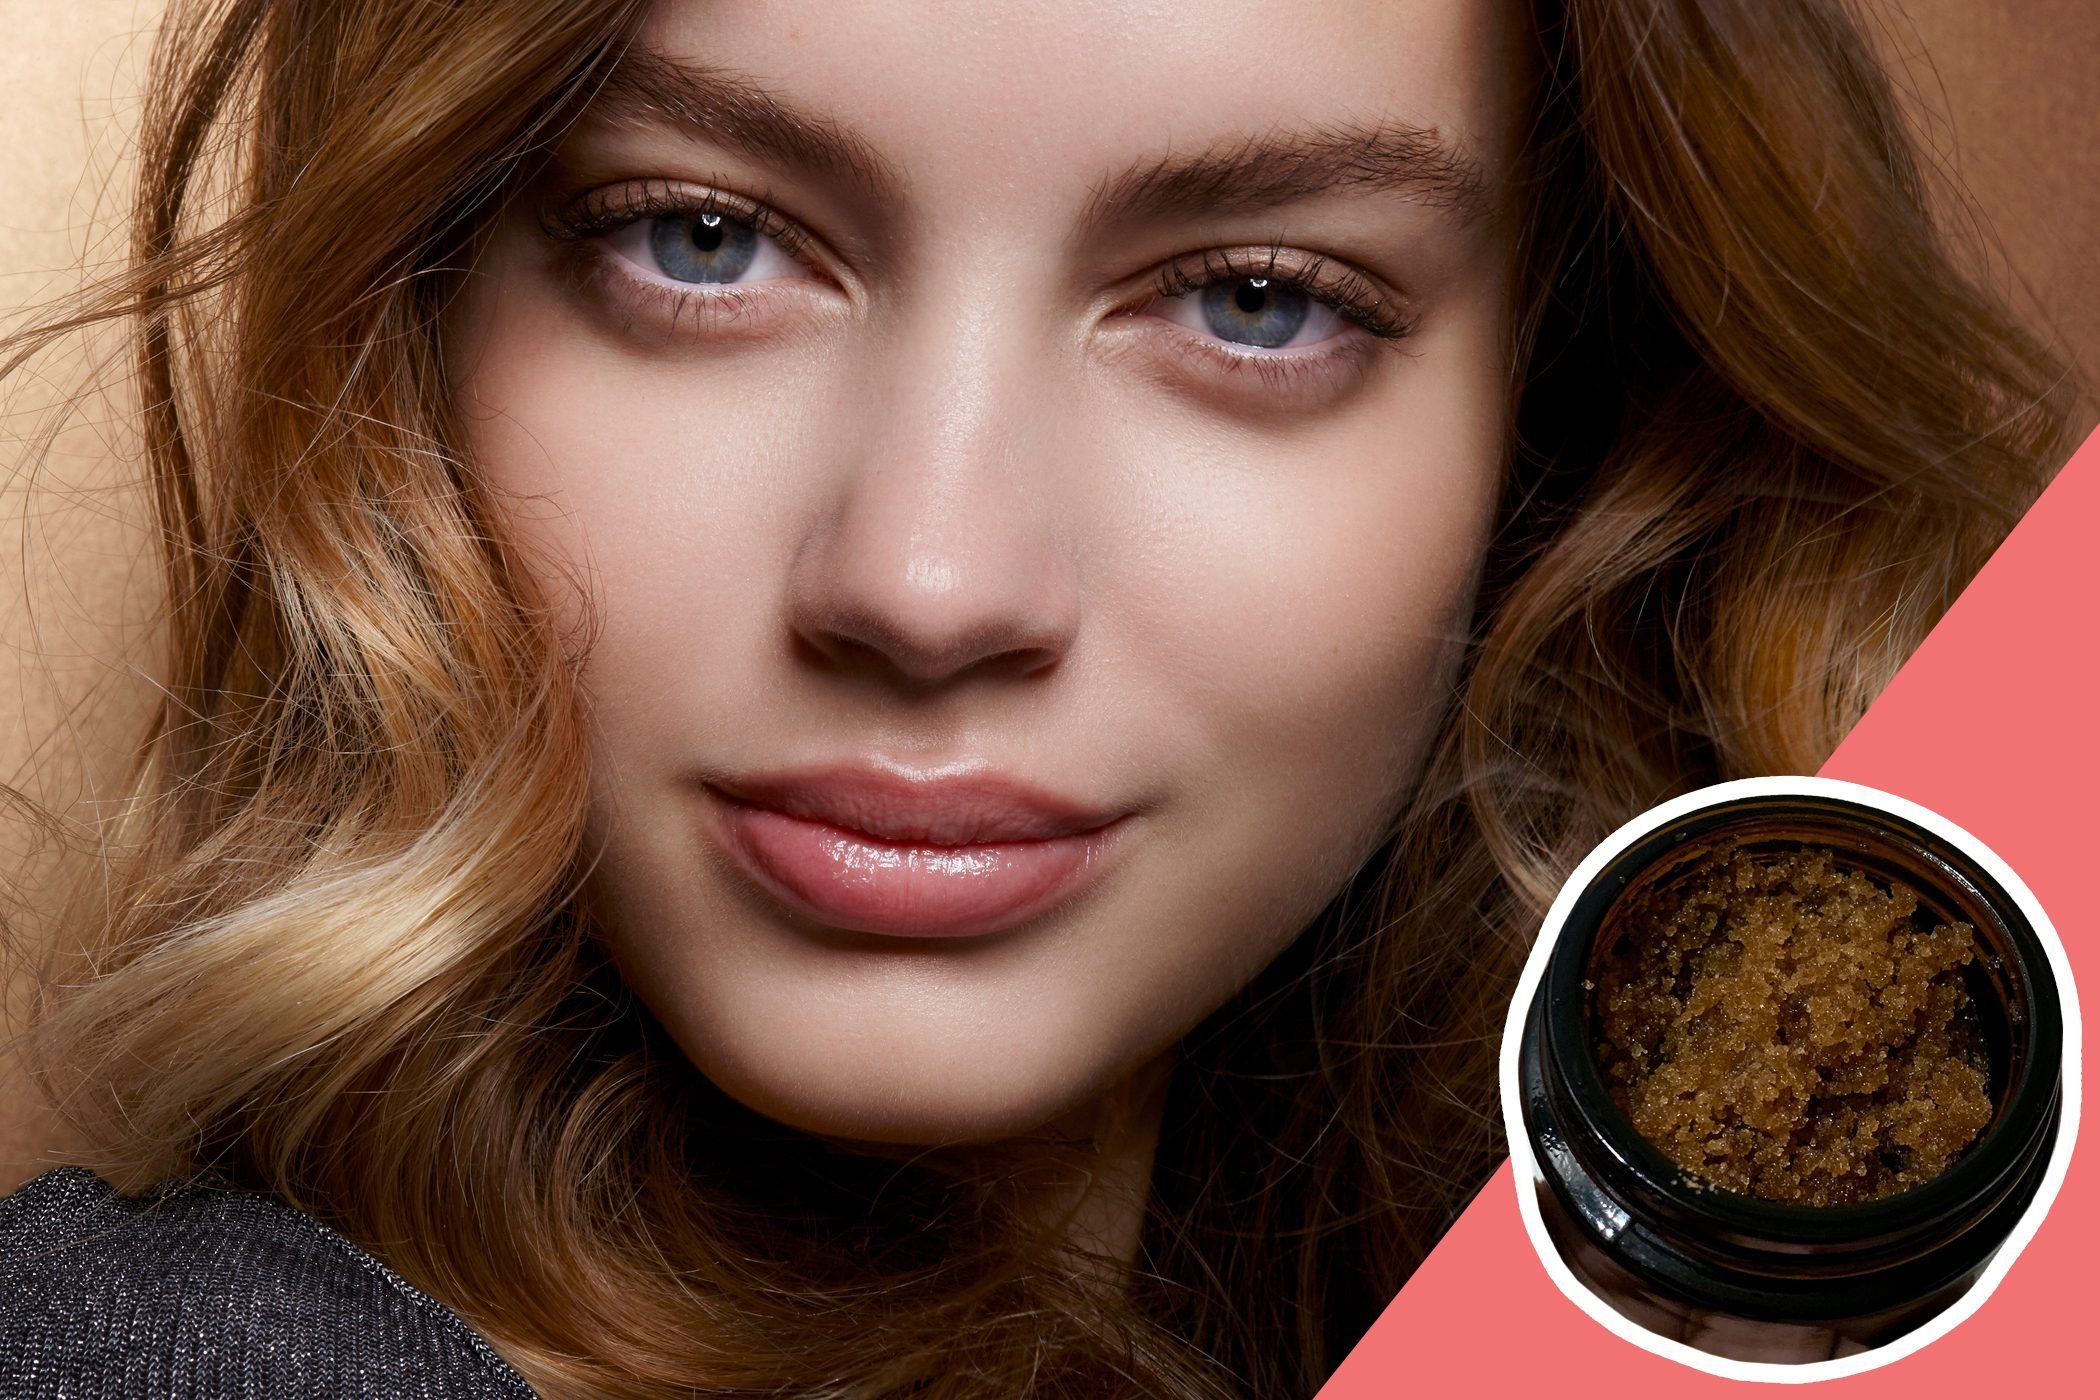 inset of Lip scrub on photo of woman with natural make up